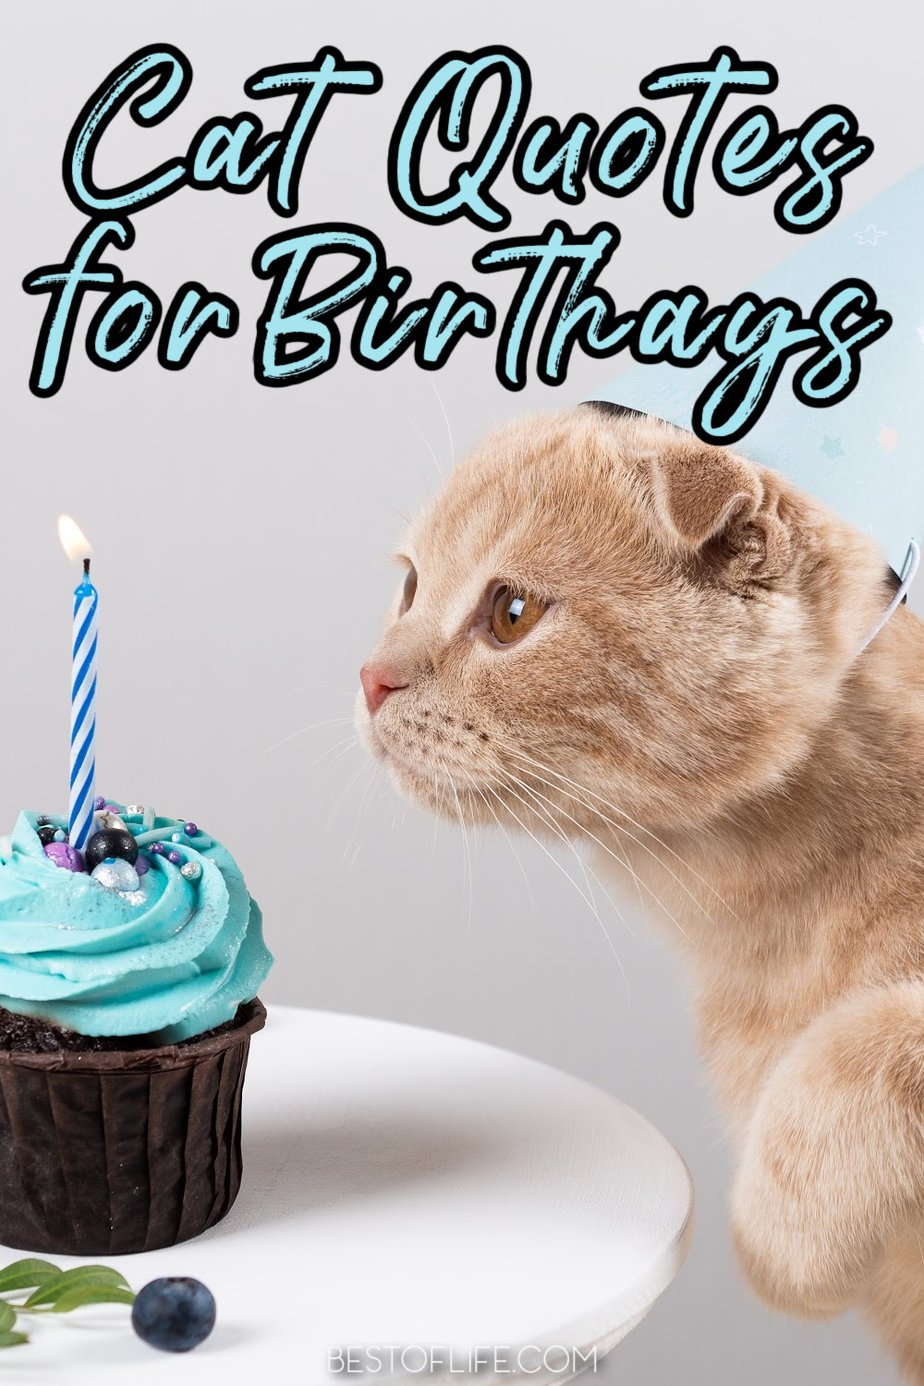 These fun cat quotes for birthdays are perfect for those who love their fur babies! Inspirational Cat Quotes   Funny Cat Quotes   Quotes About Cats   Quotes for Cat Lovers   Cat People Quotes   Birthday Quotes   Birthday Wishes #cats #birthday via @thebestoflife